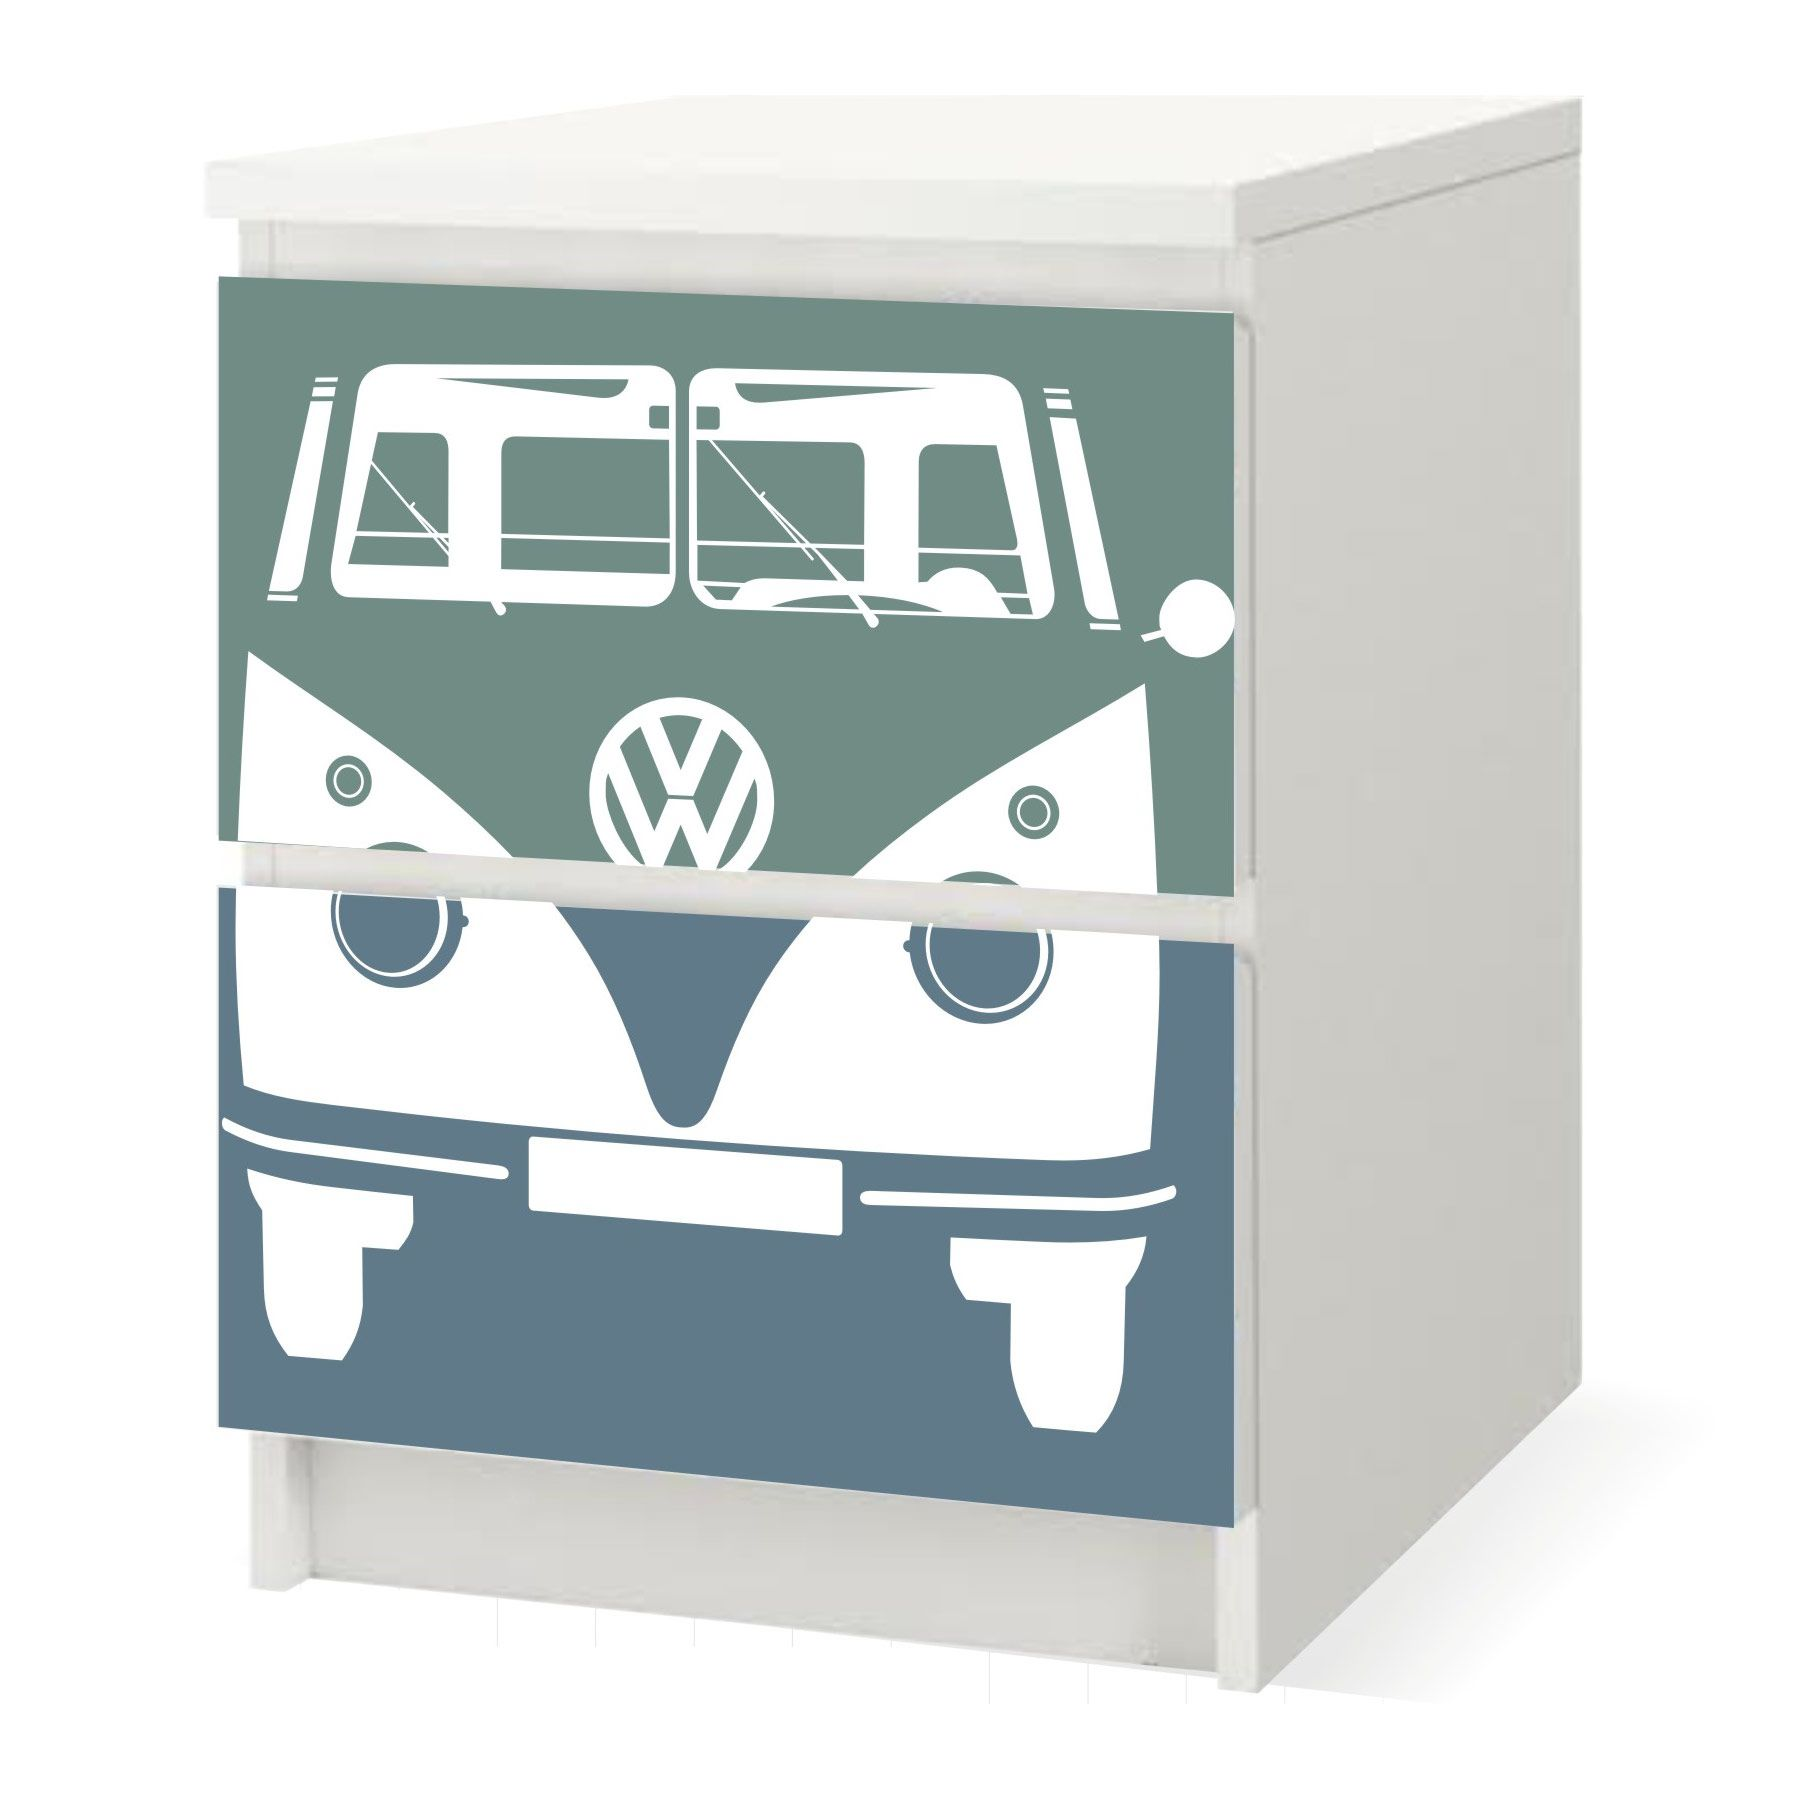 Stickers Malm Stickers X Cm With Stickers Malm Affordable Image  # Meuble Avec Vw